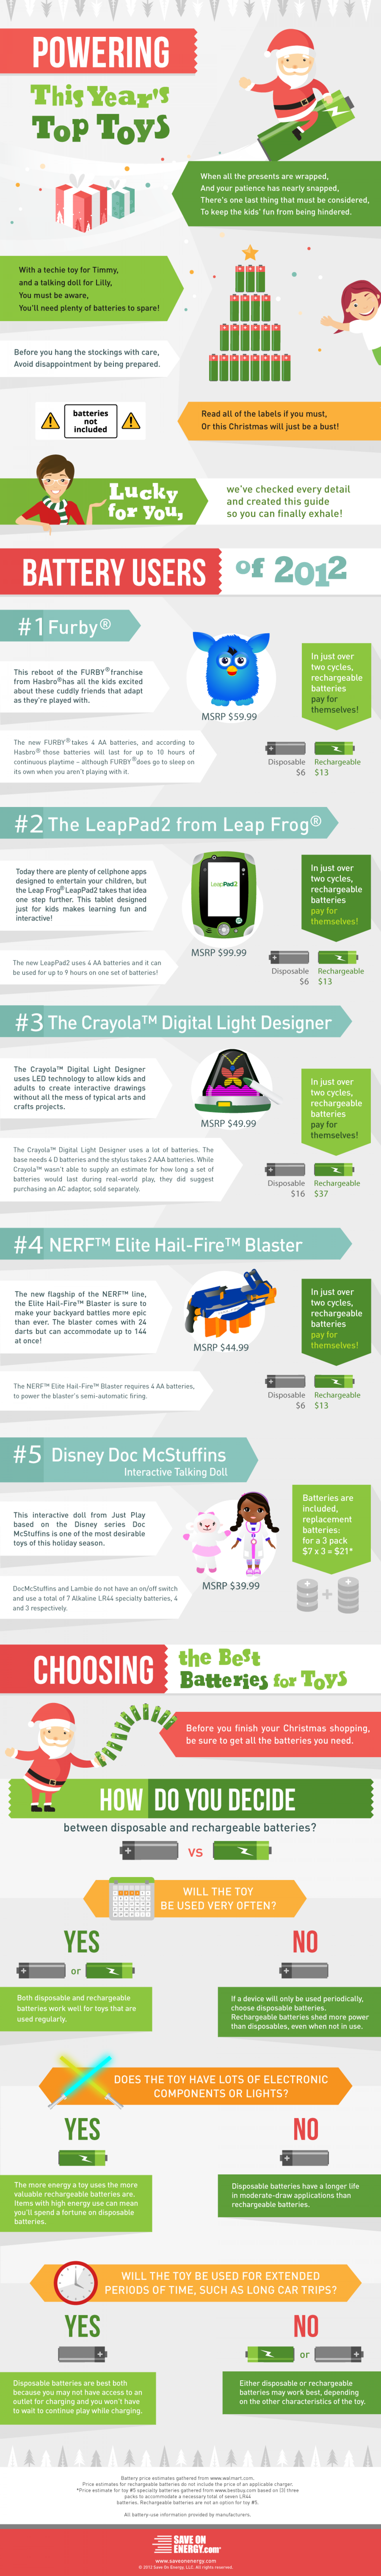 Powering the Hottest Toys of 2012 Infographic